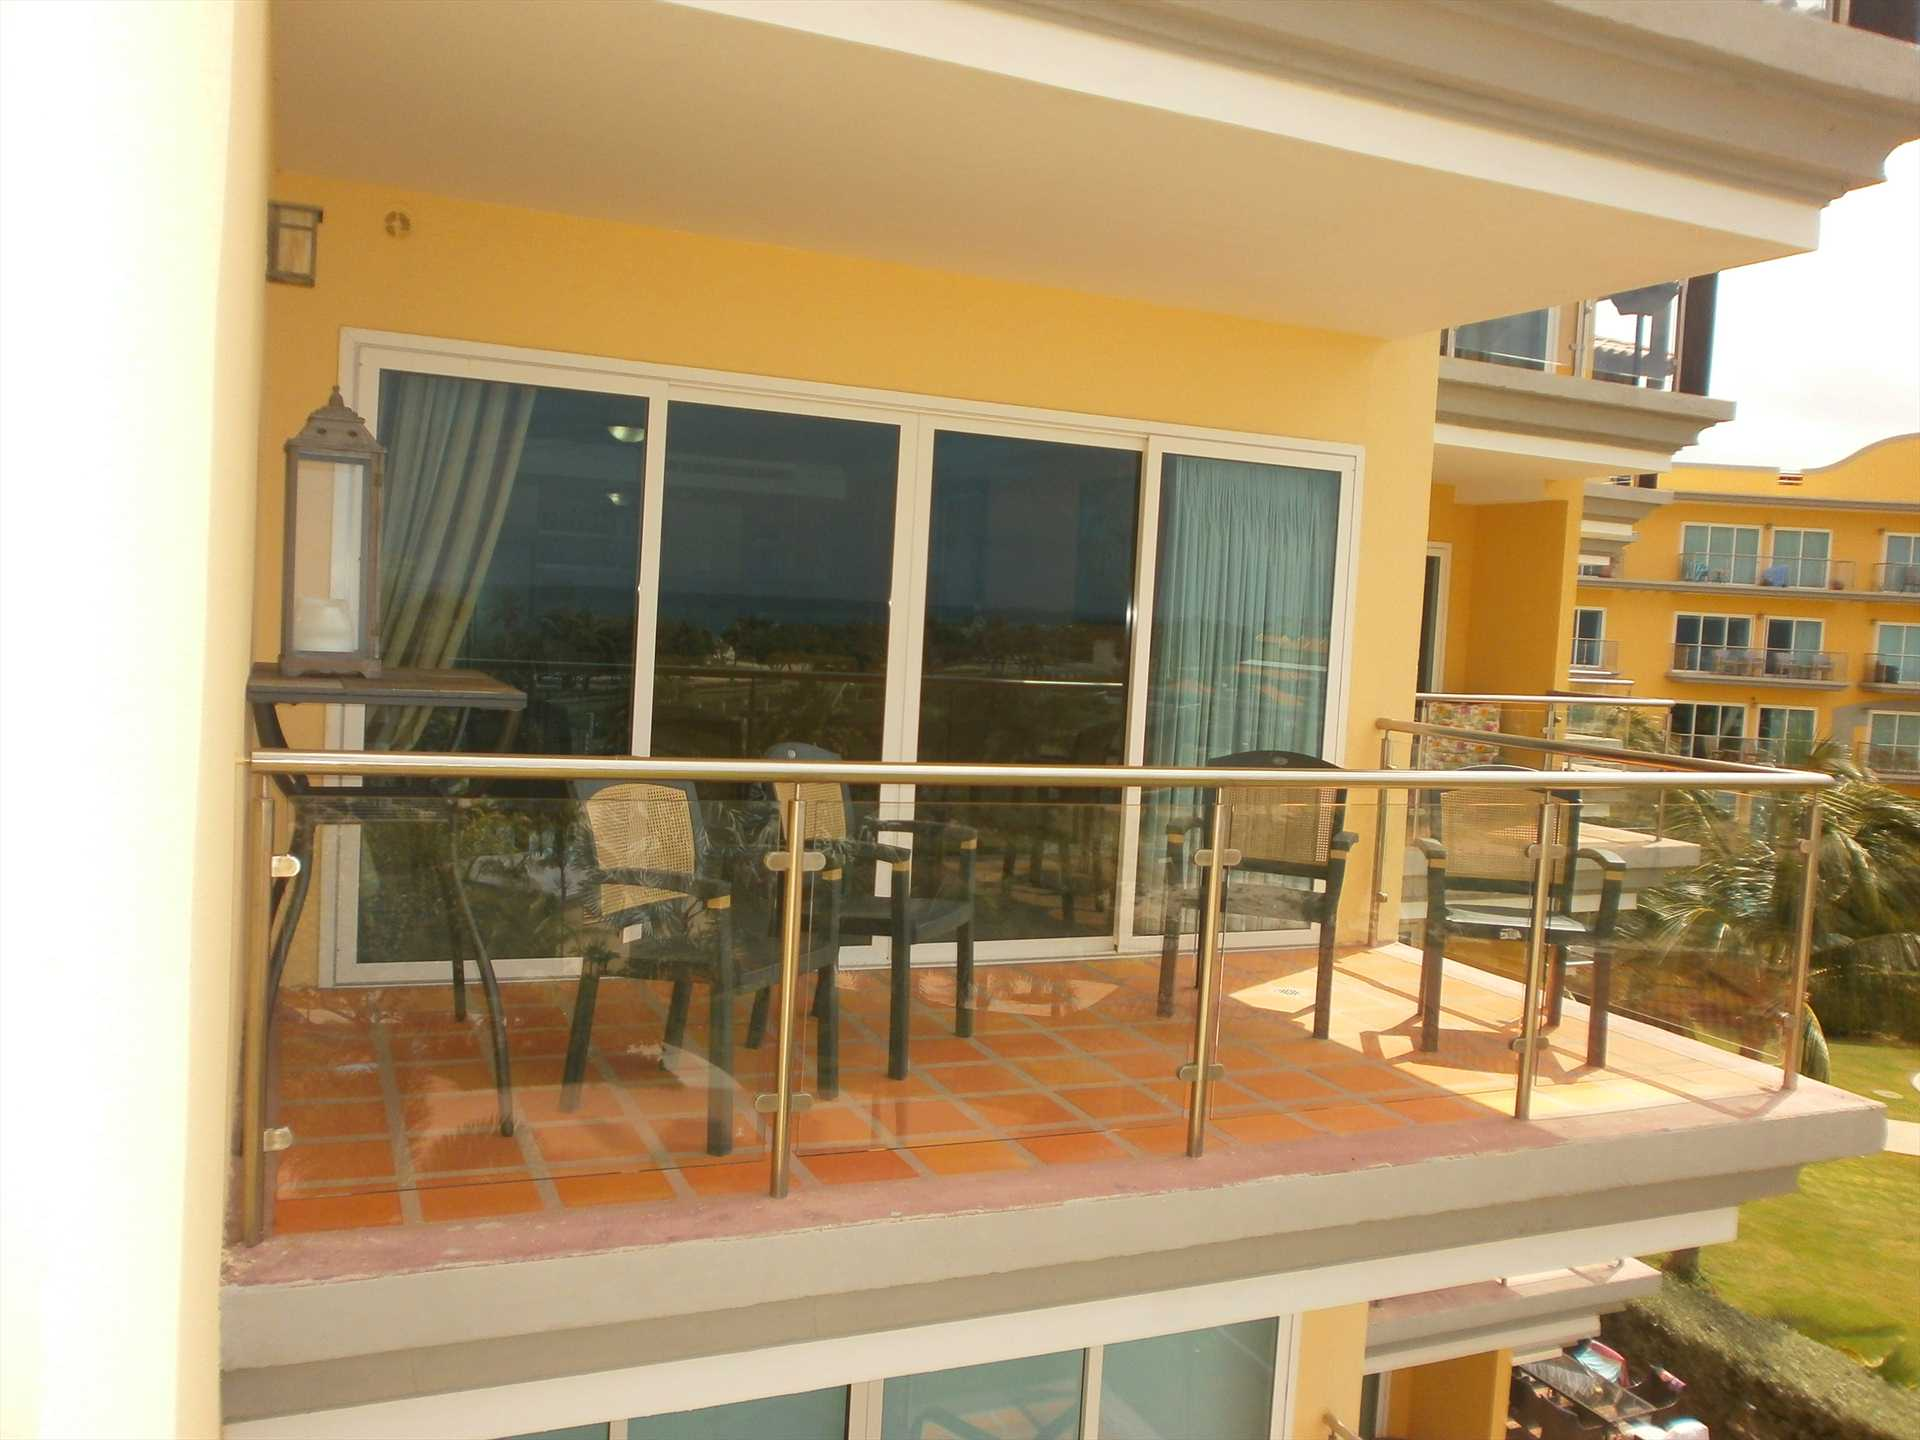 View of living area balcony from the master bedroom balcony.